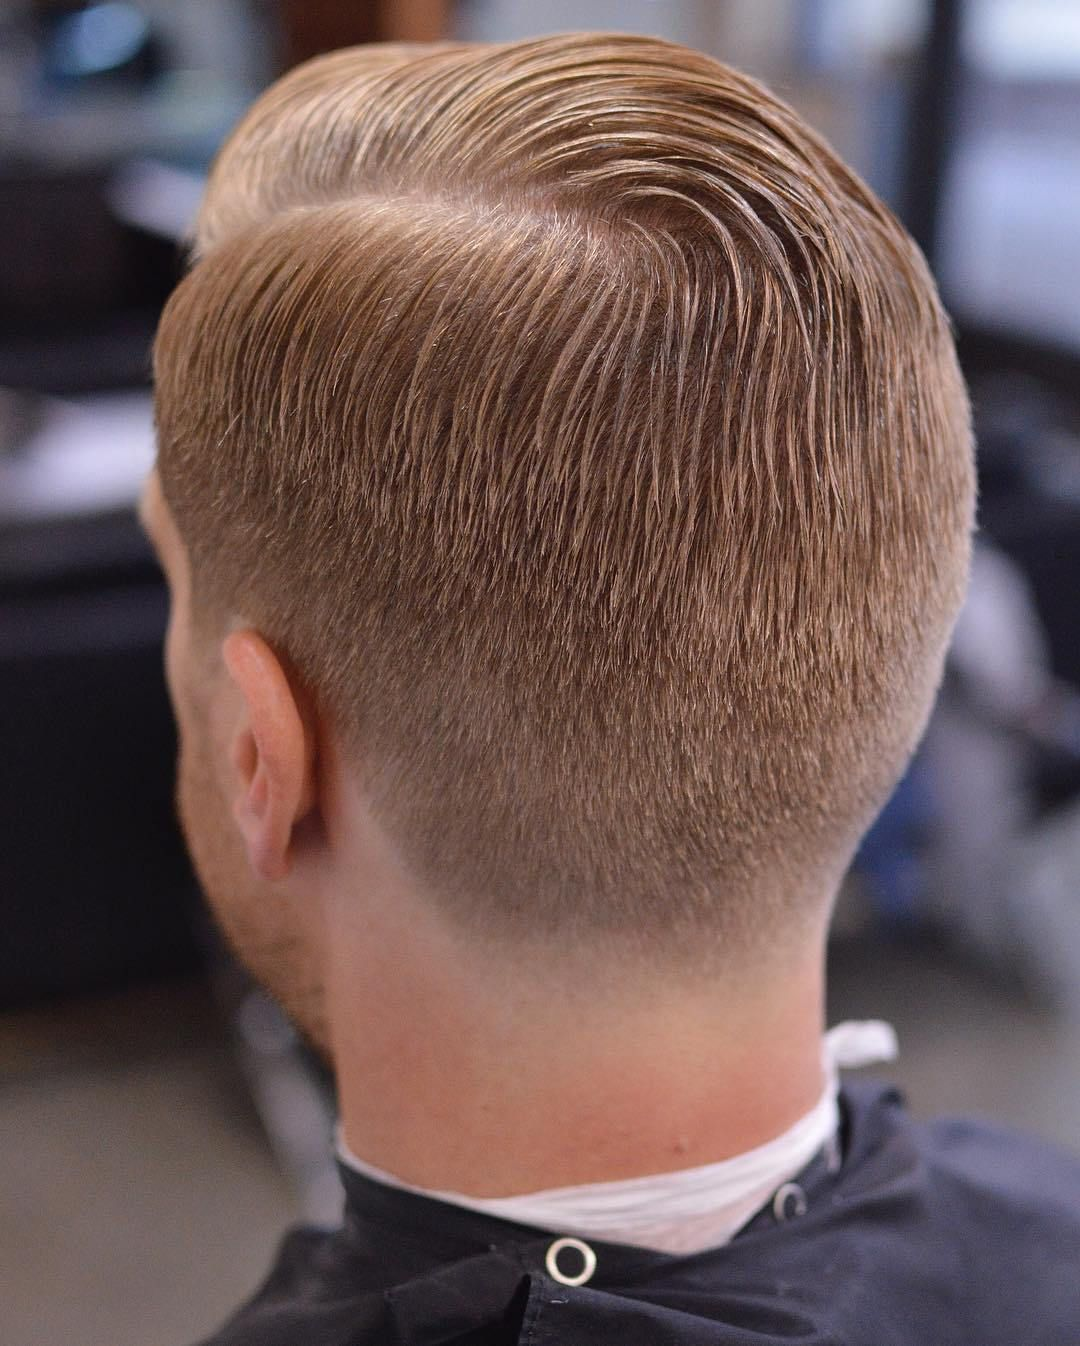 Normal mens haircut simple hairstyles for school simple hairstyles for long hair